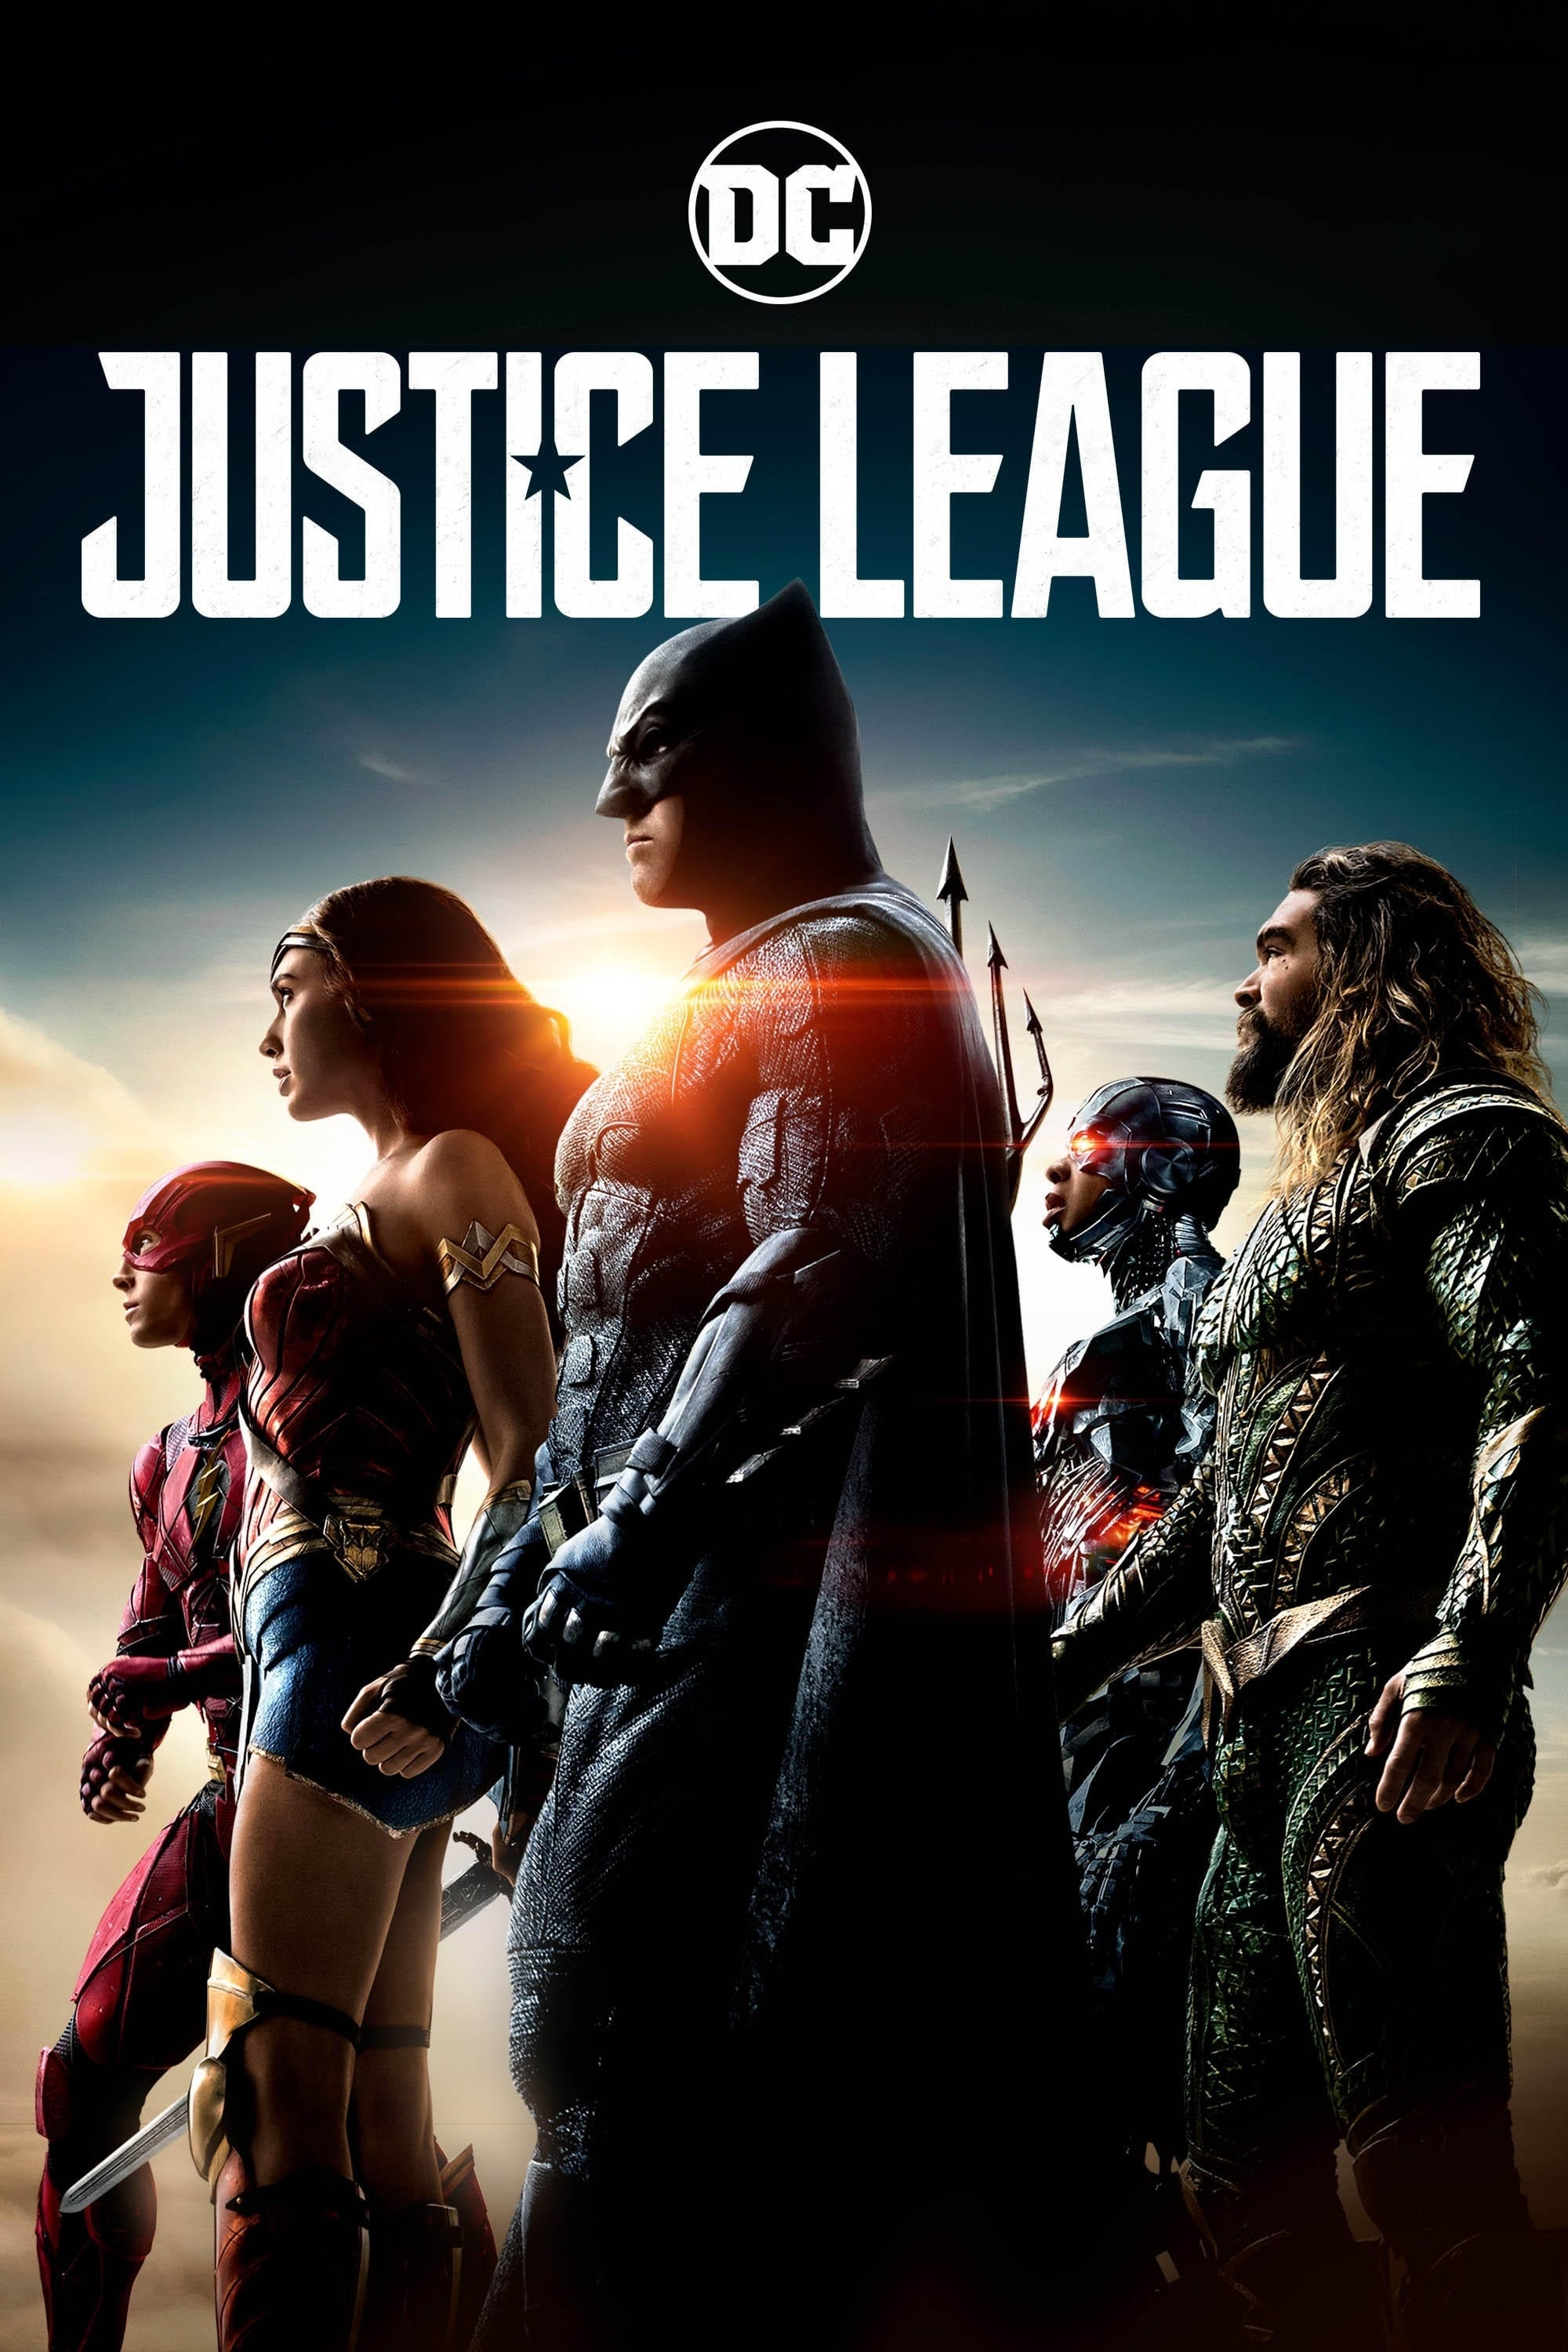 Justice League (2017) Posters u2014 The Movie Database (TMDb)